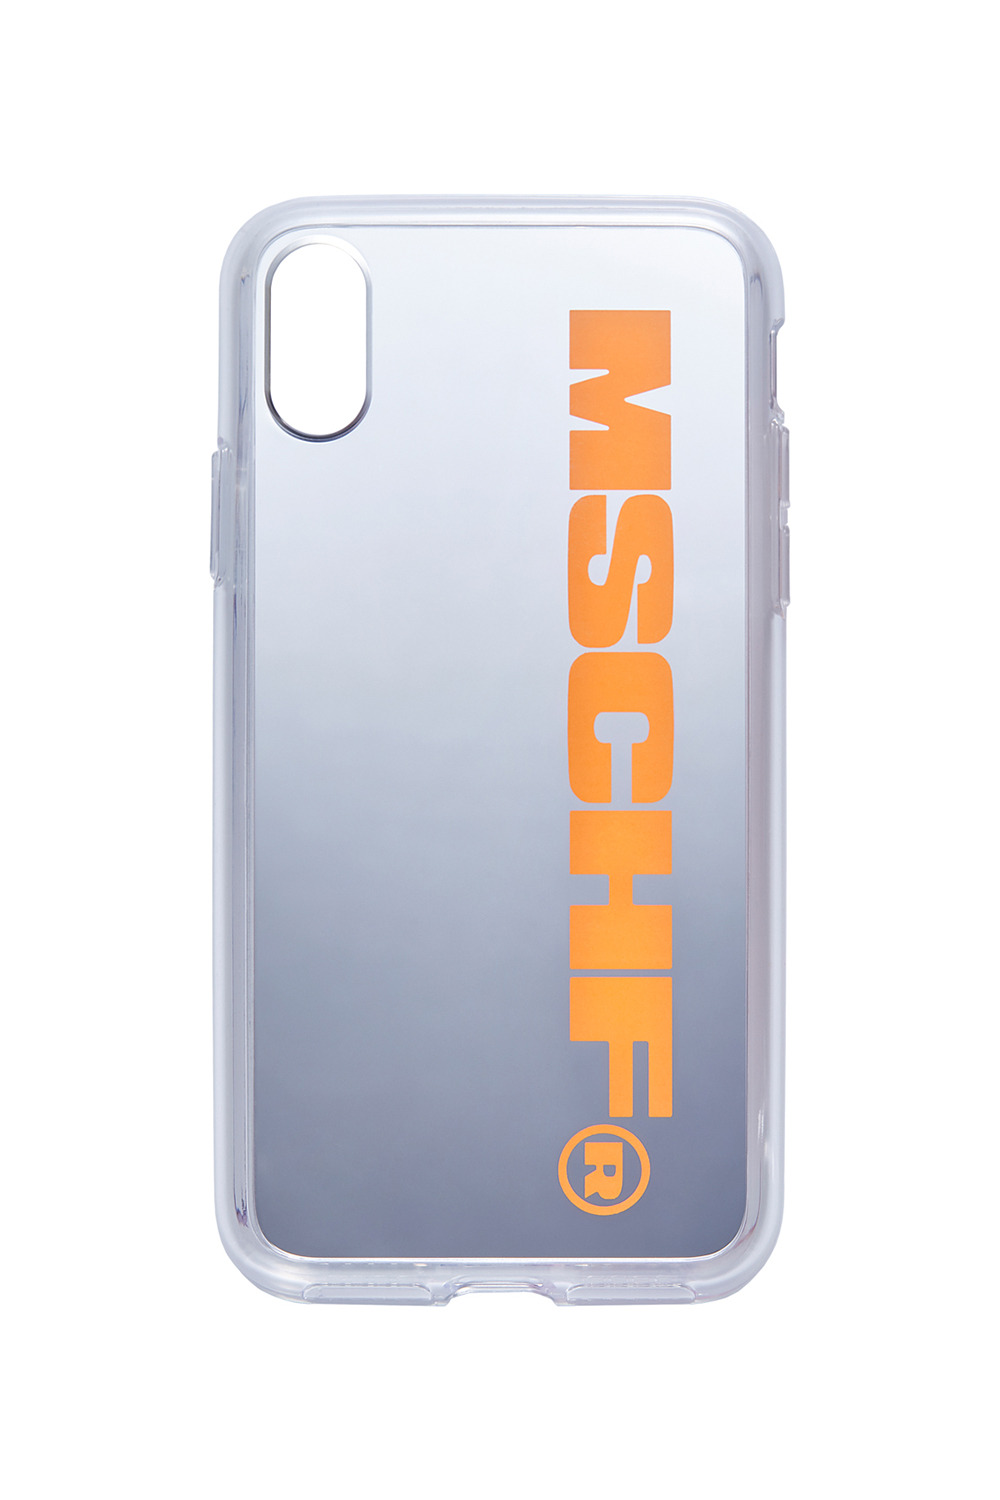 MSCHF_IPHONE MIRROR CASE_NEON ORANGE